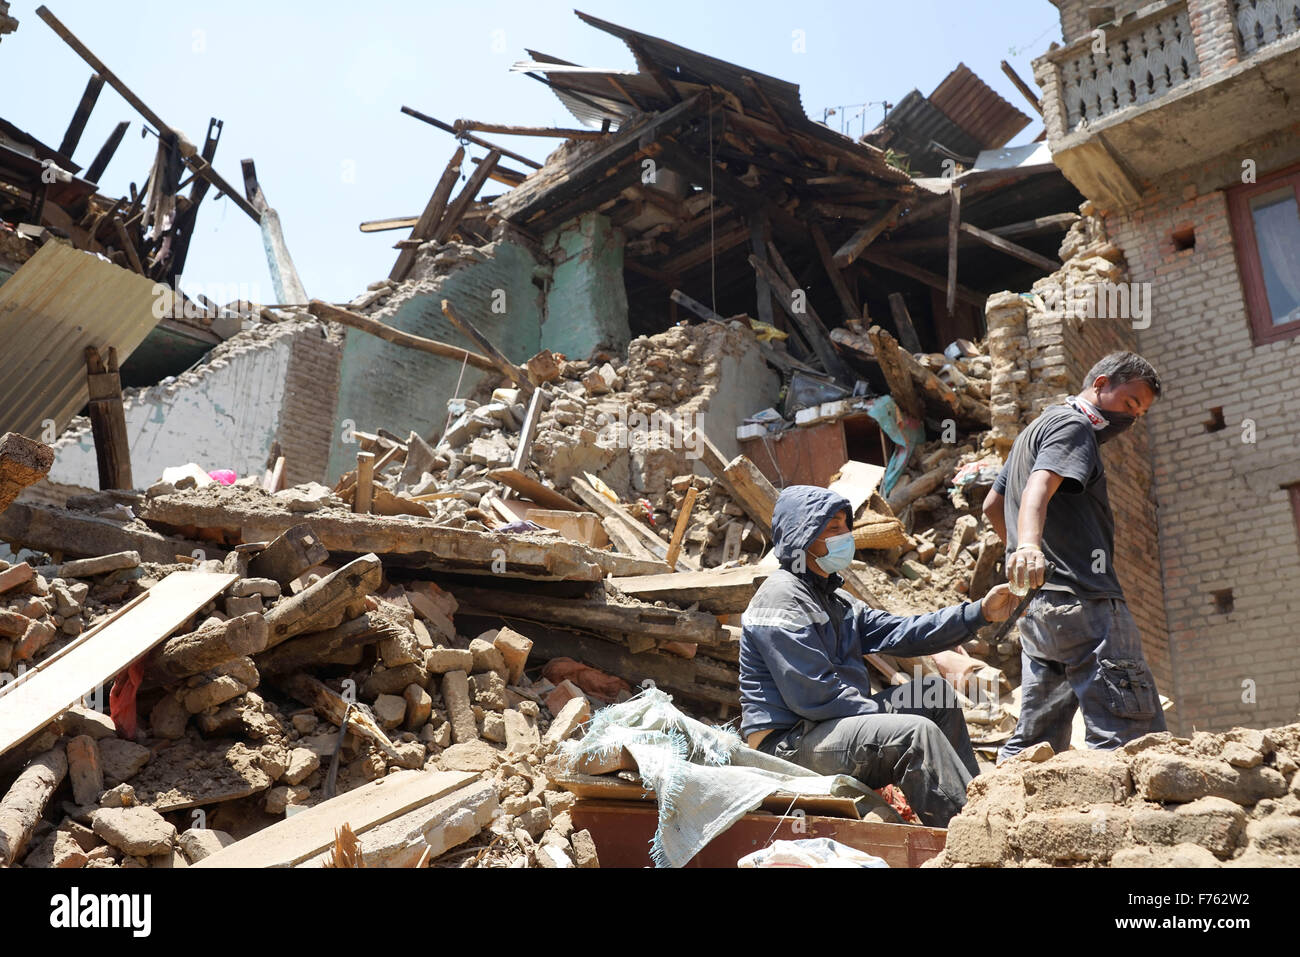 Gorkha earthquake 2015 people trying to find things from rubble, nepal, asia - asb 193661 - Stock Image